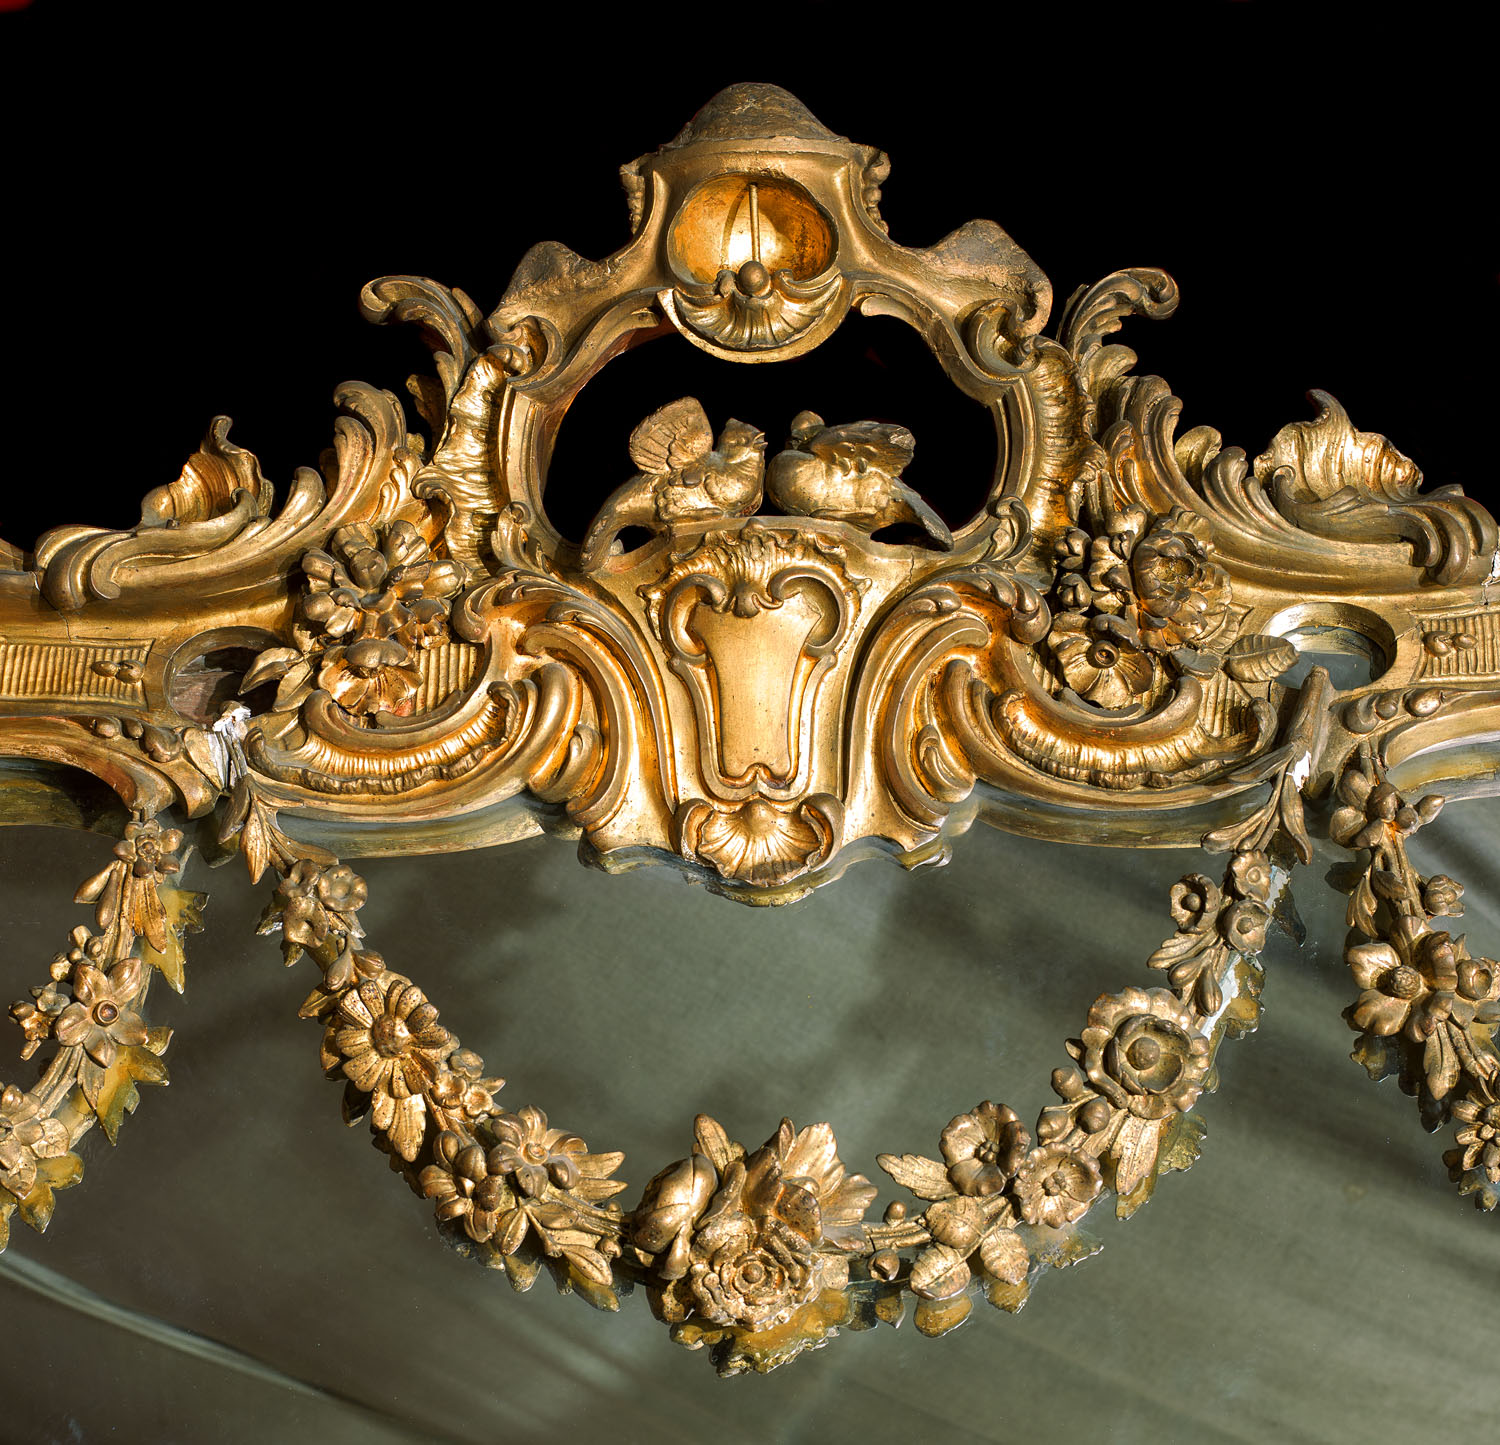 Highly ornate and large Louis XV style giltwood over mantel mirror